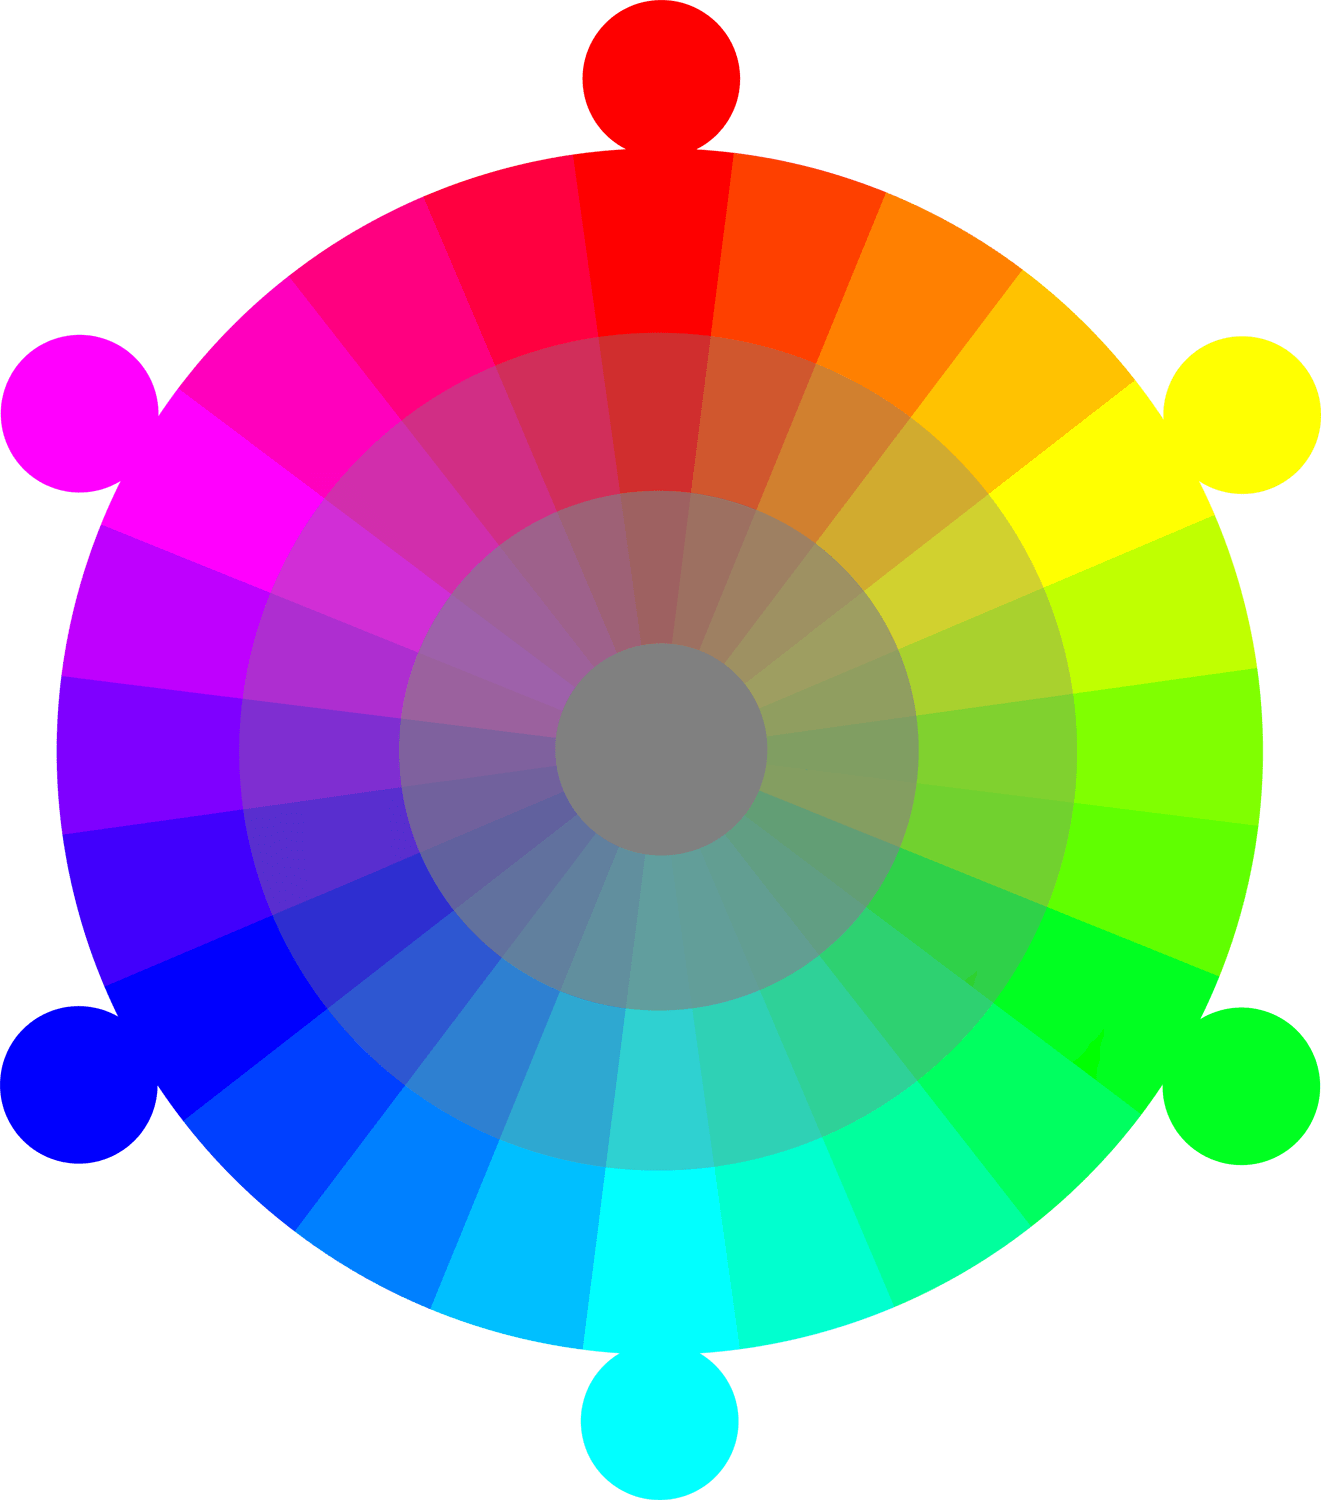 Blendoku Developers Novel Approach To Adding Colorblind